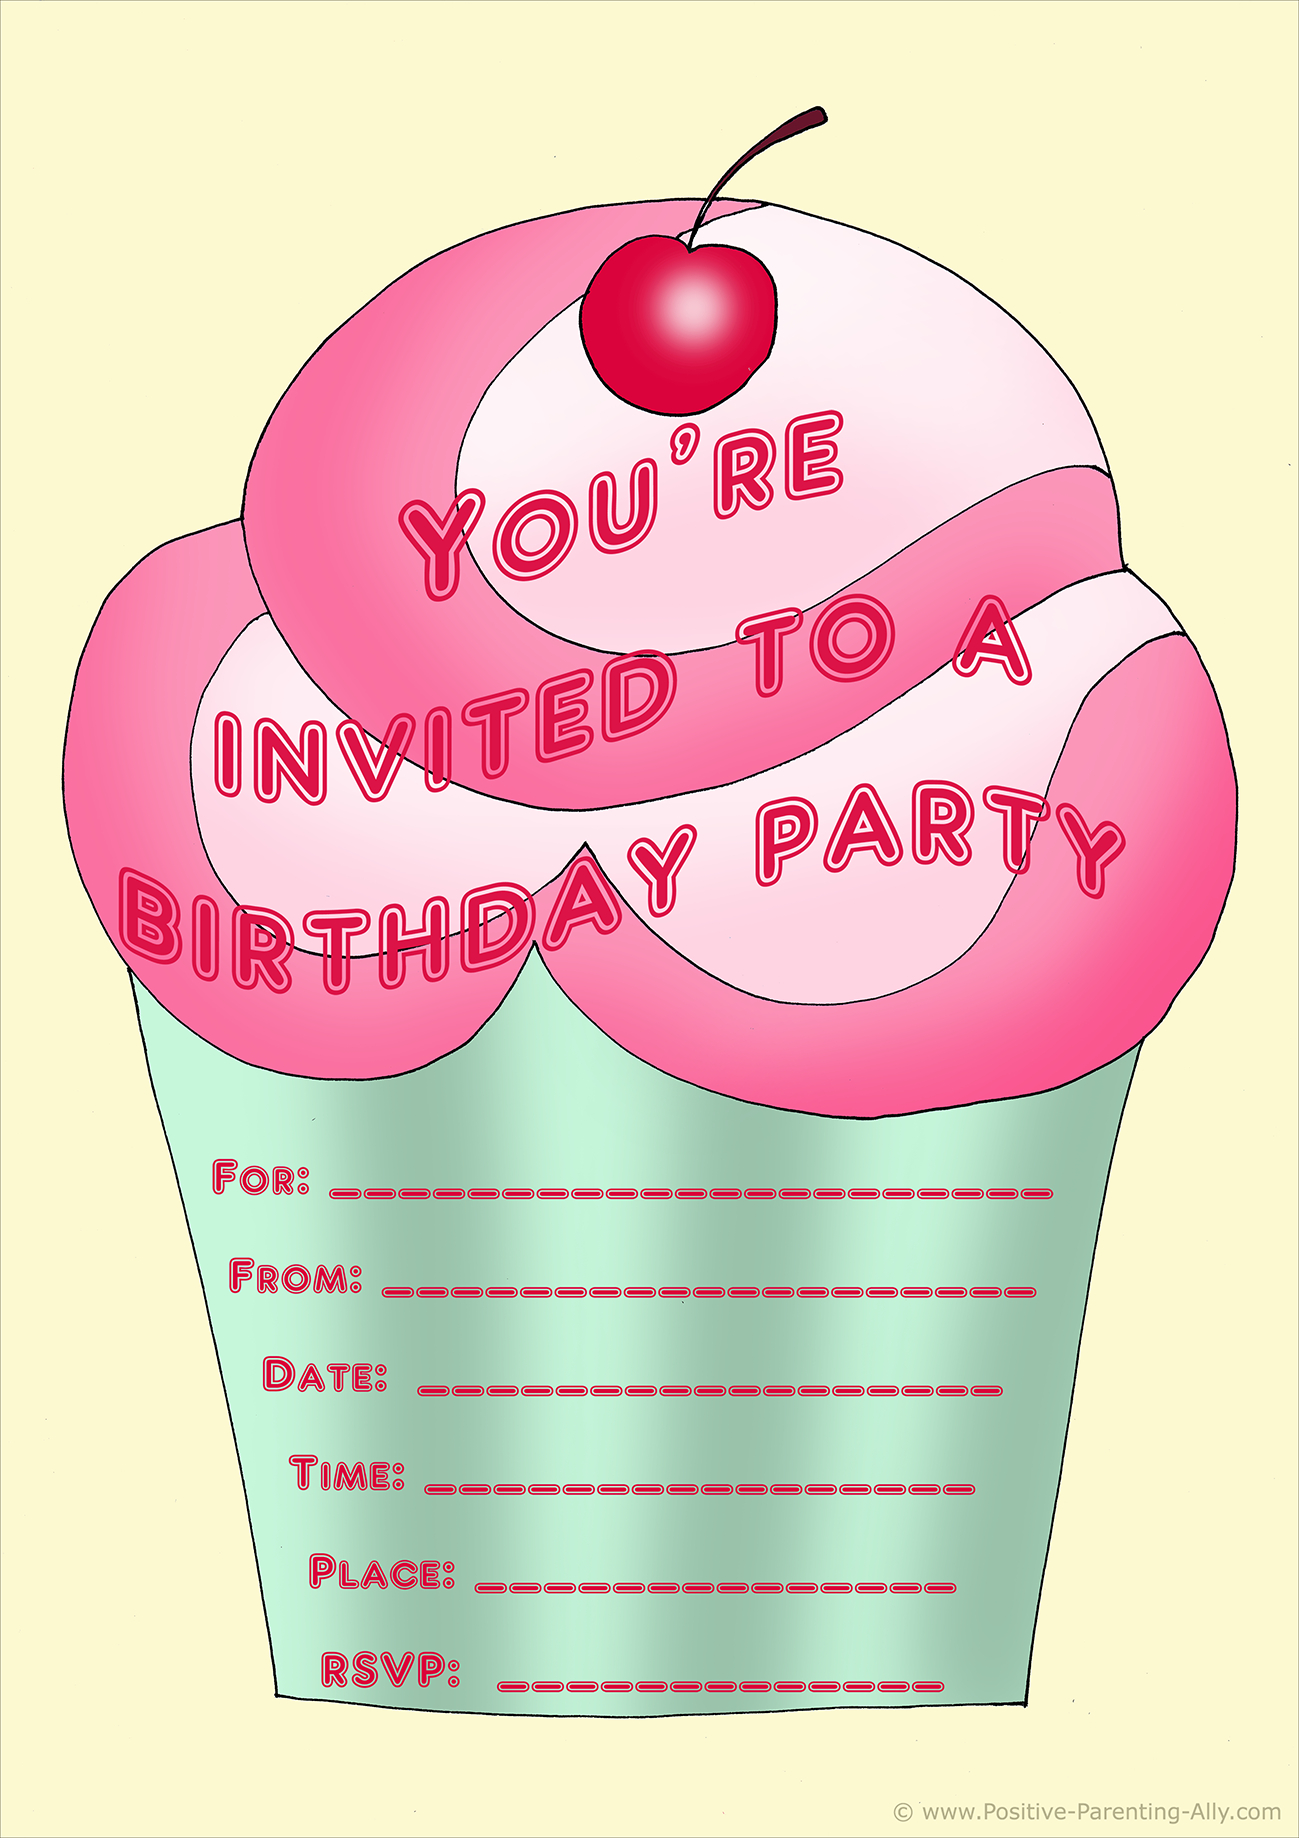 Free Birthday Party Invites For Kids In High Print Quality - Free Printable Girl Birthday Invitations